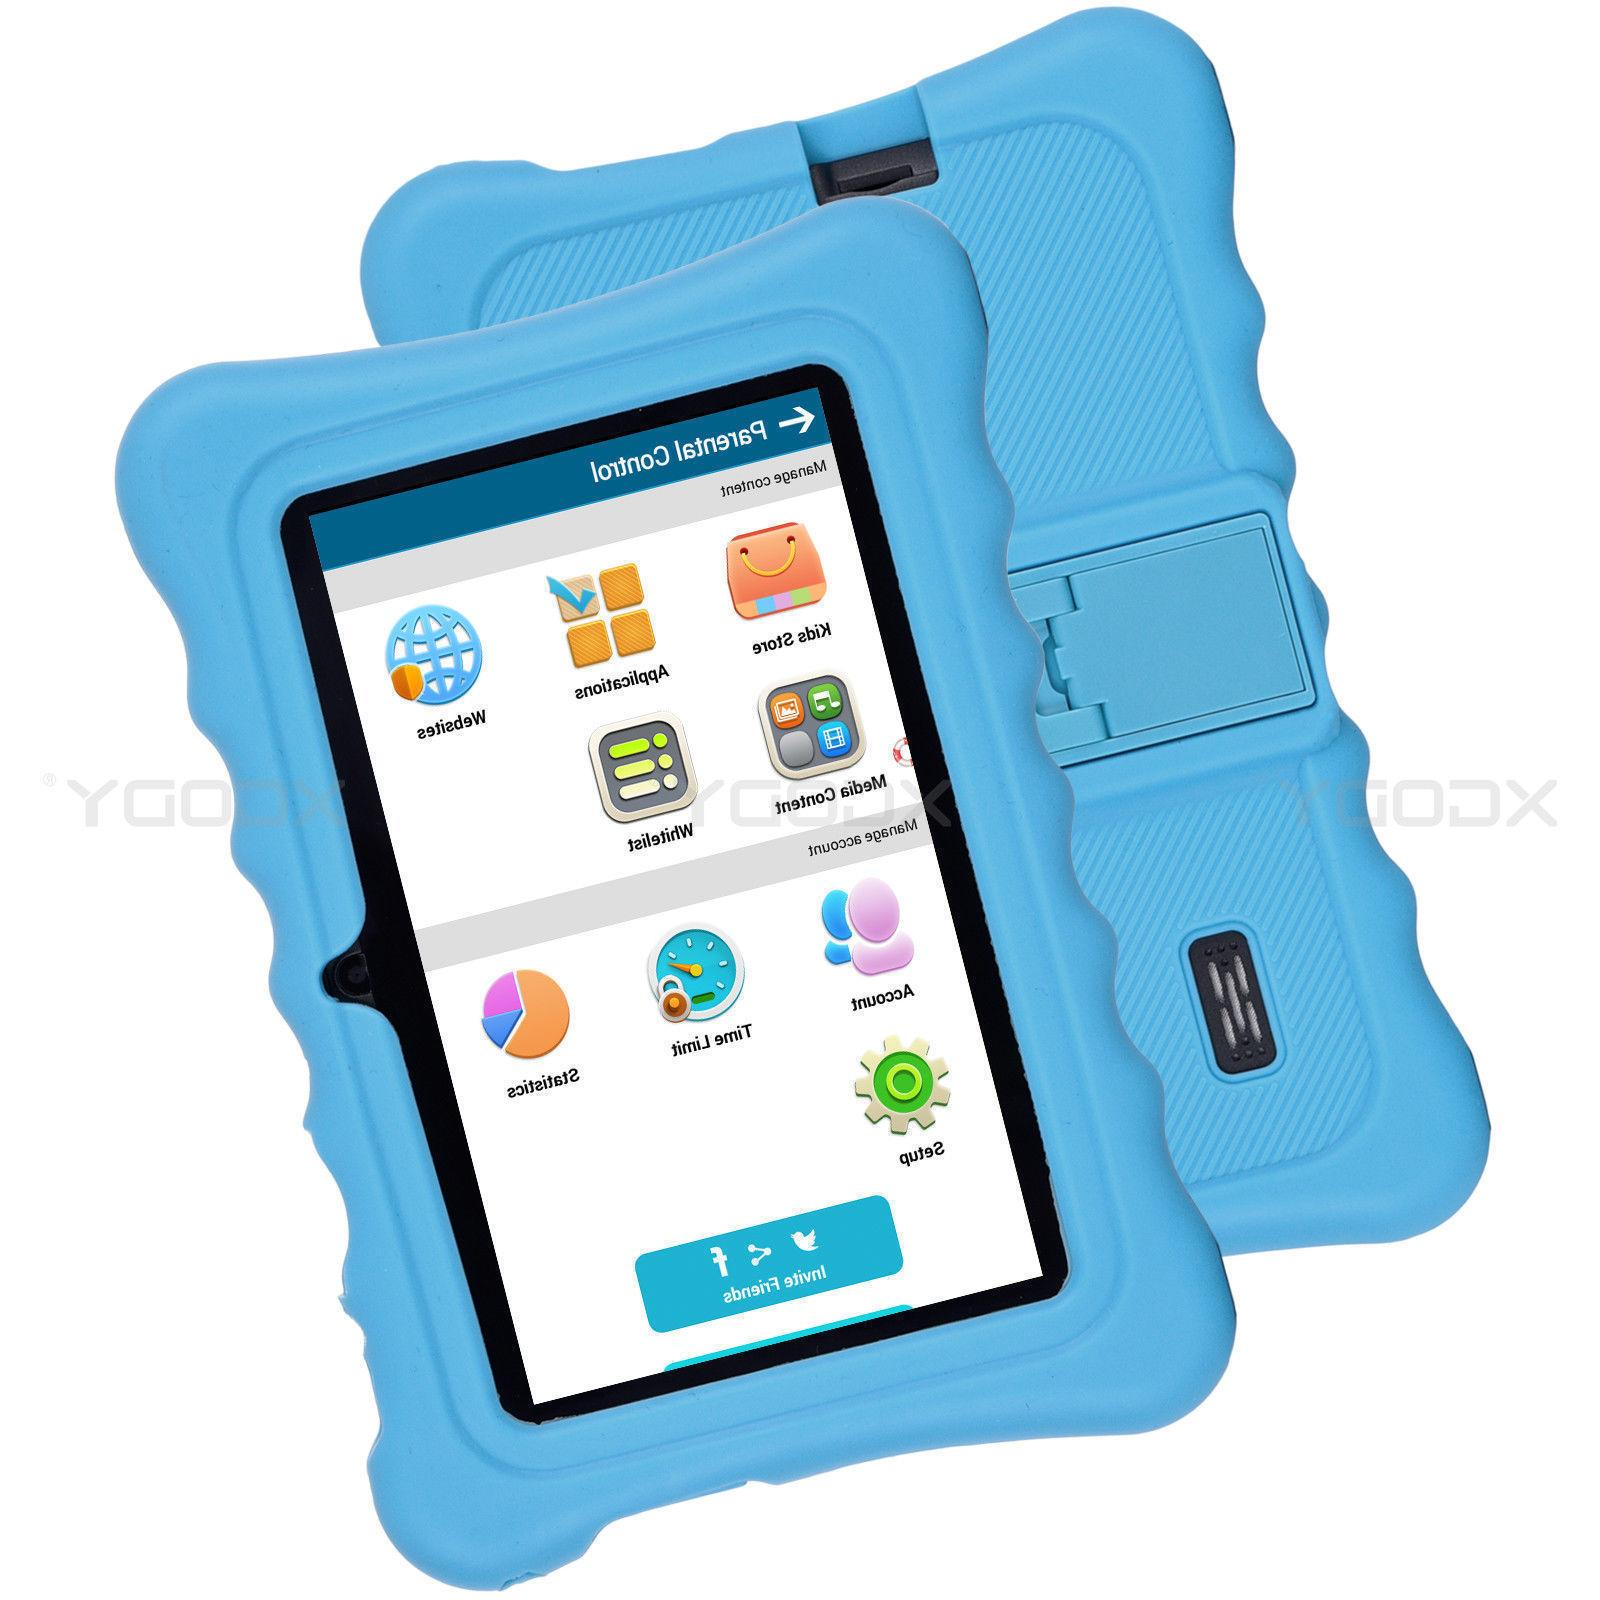 XGODY Quad Android Tablet PC WiFi Webcam Kids